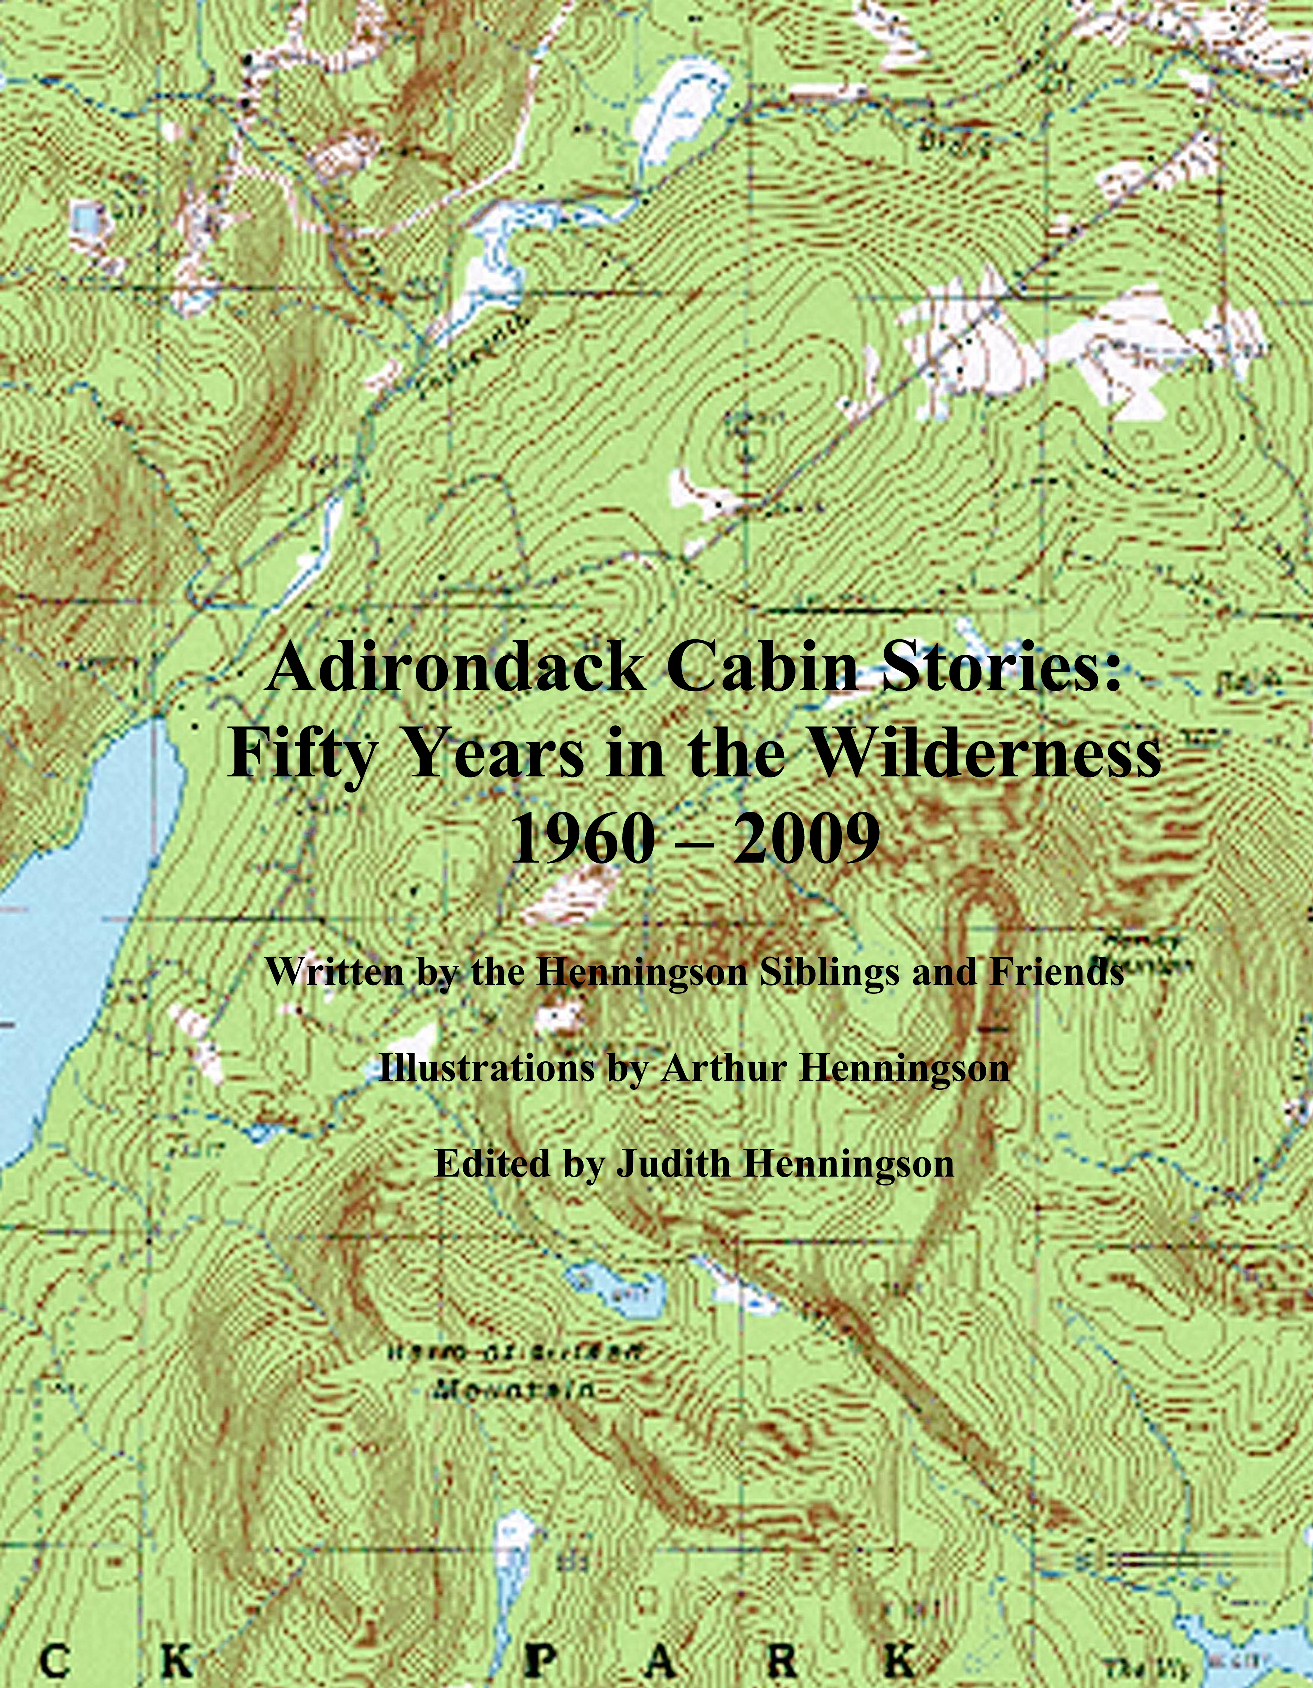 Adirondack cabin stories front cover